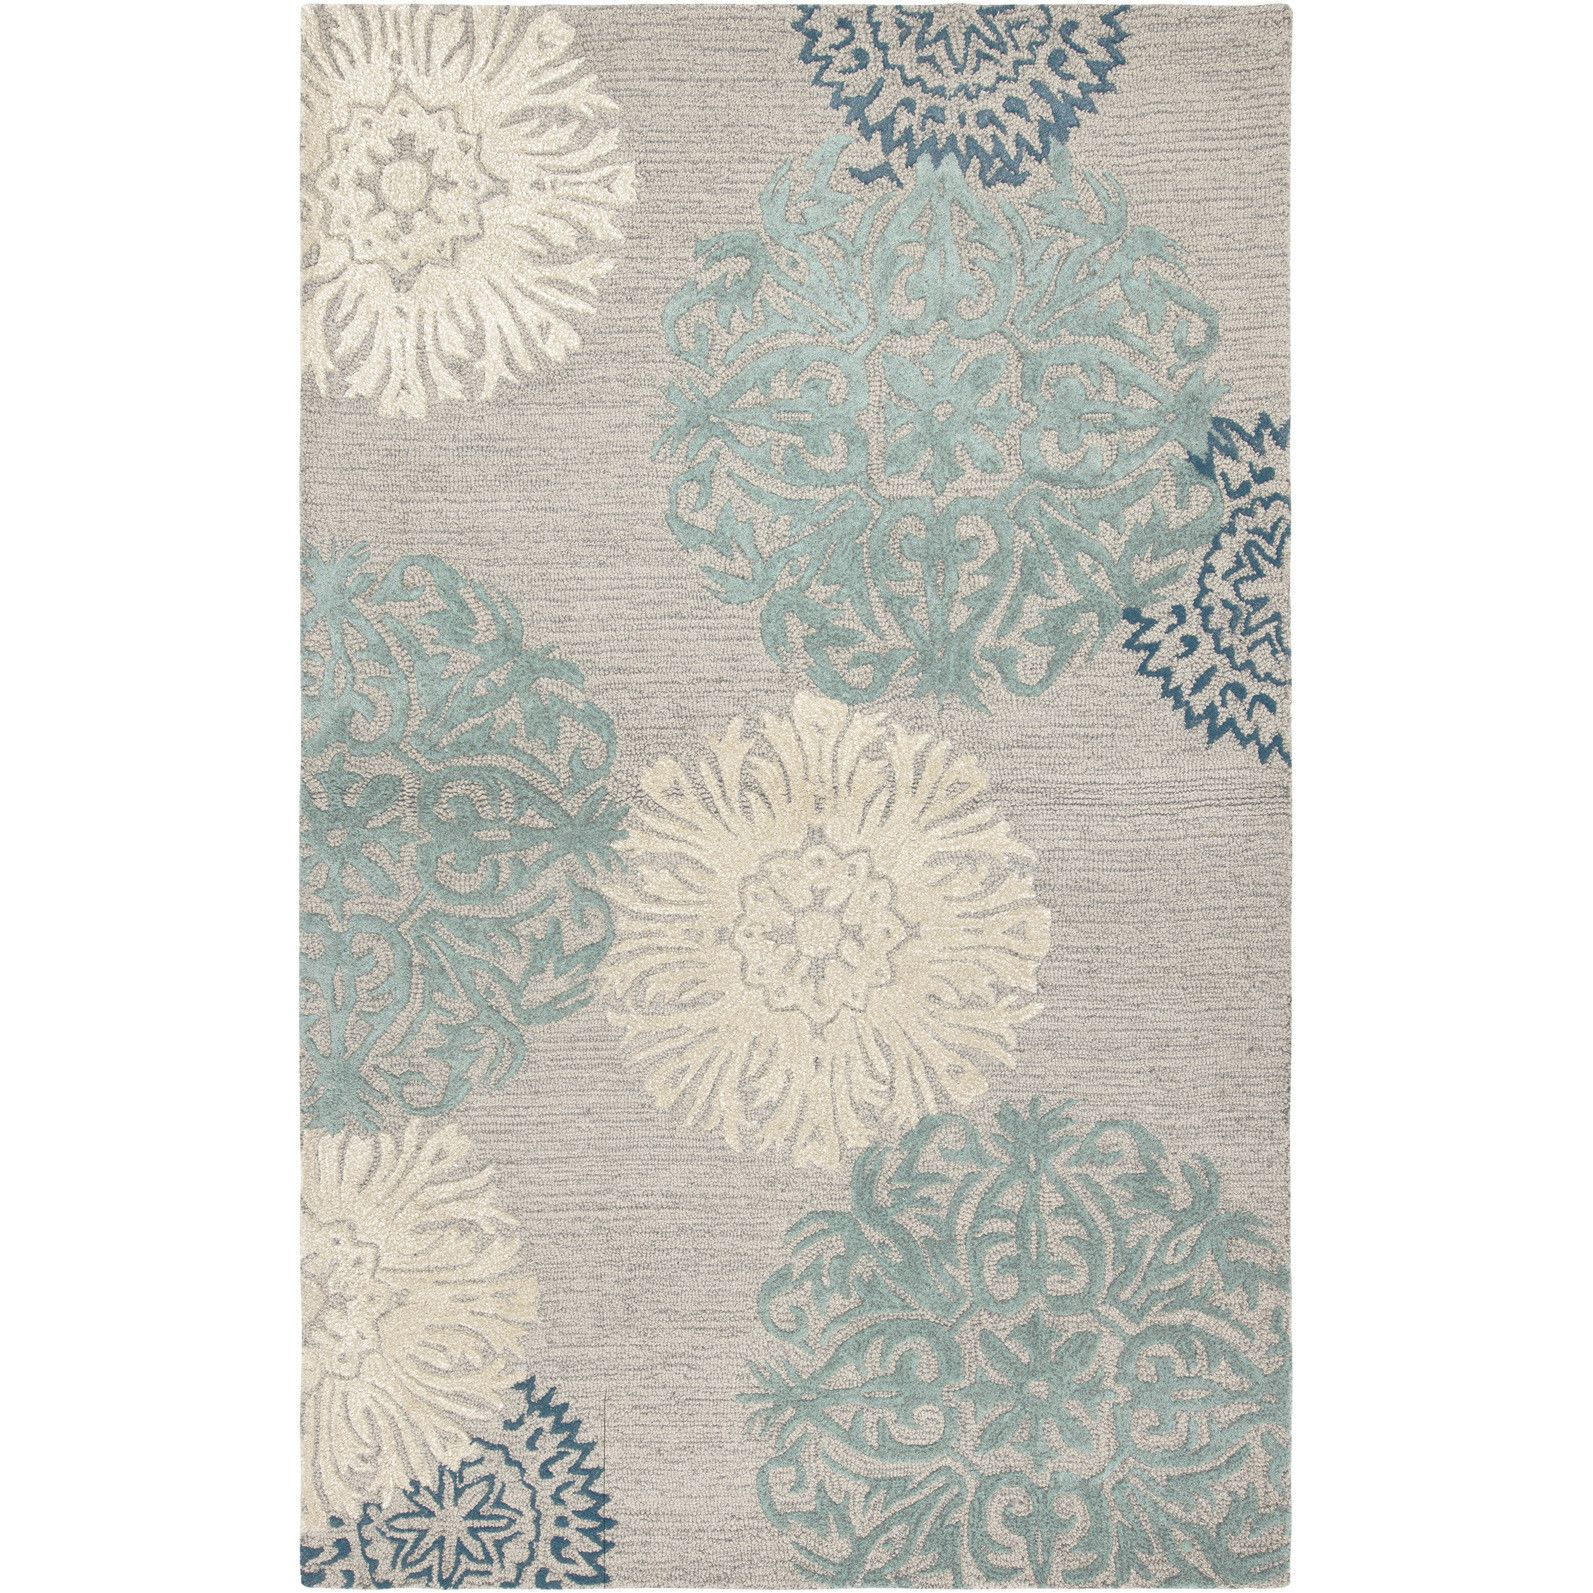 Wildon Home ® Amerique Hand-Tufted Light Gray Area Rug | Tartan ...